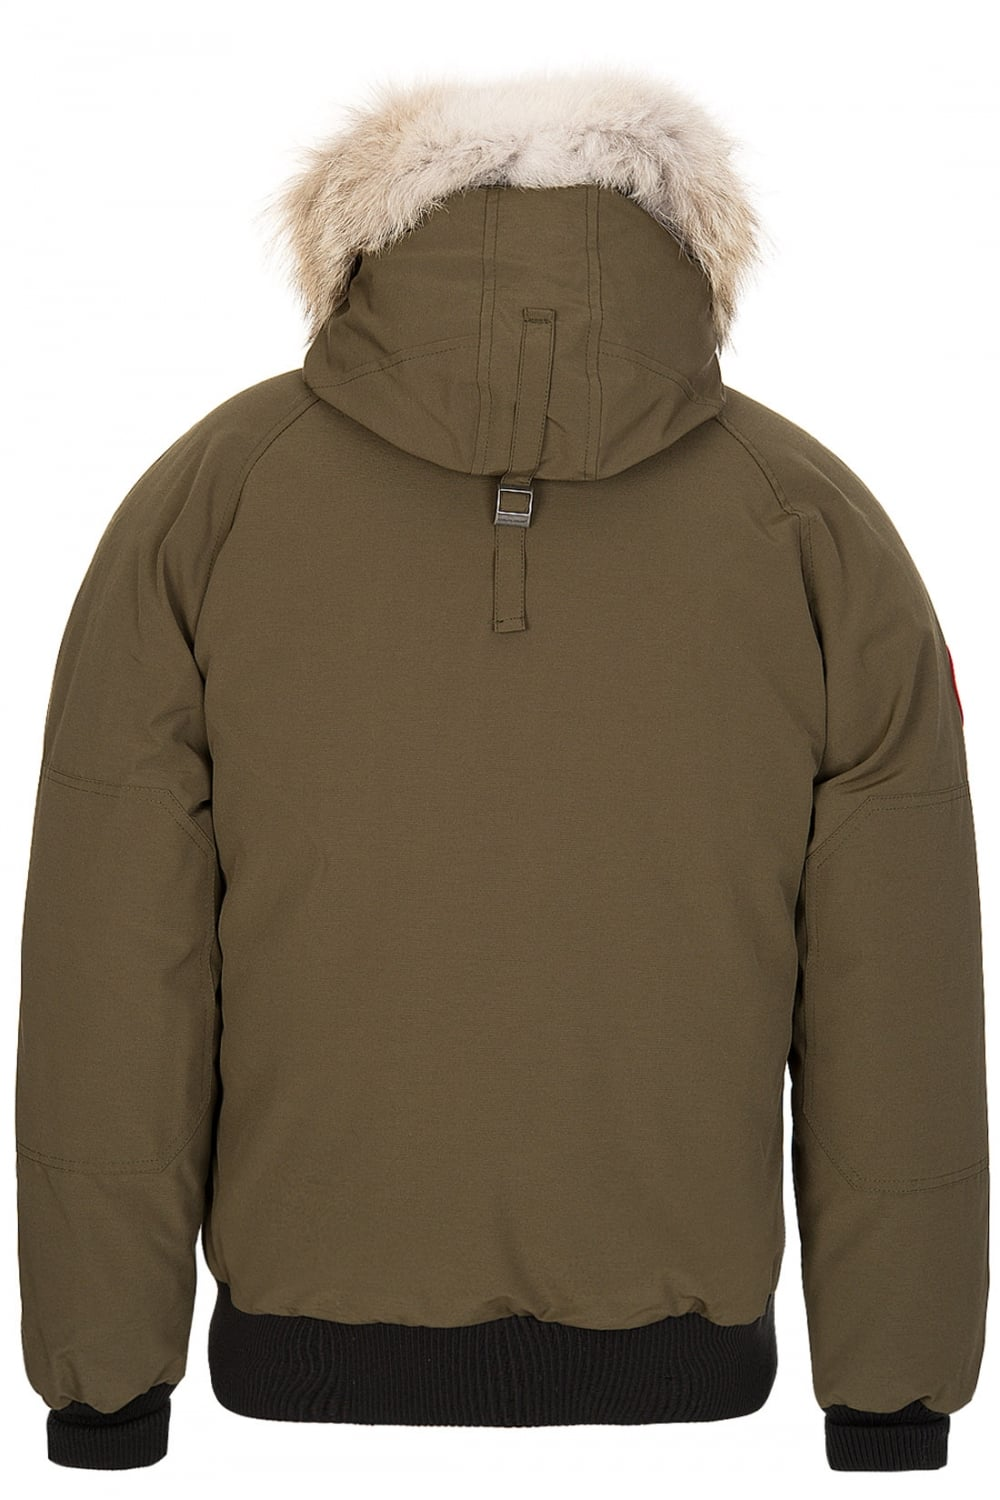 Canada Goose Jackets Womens